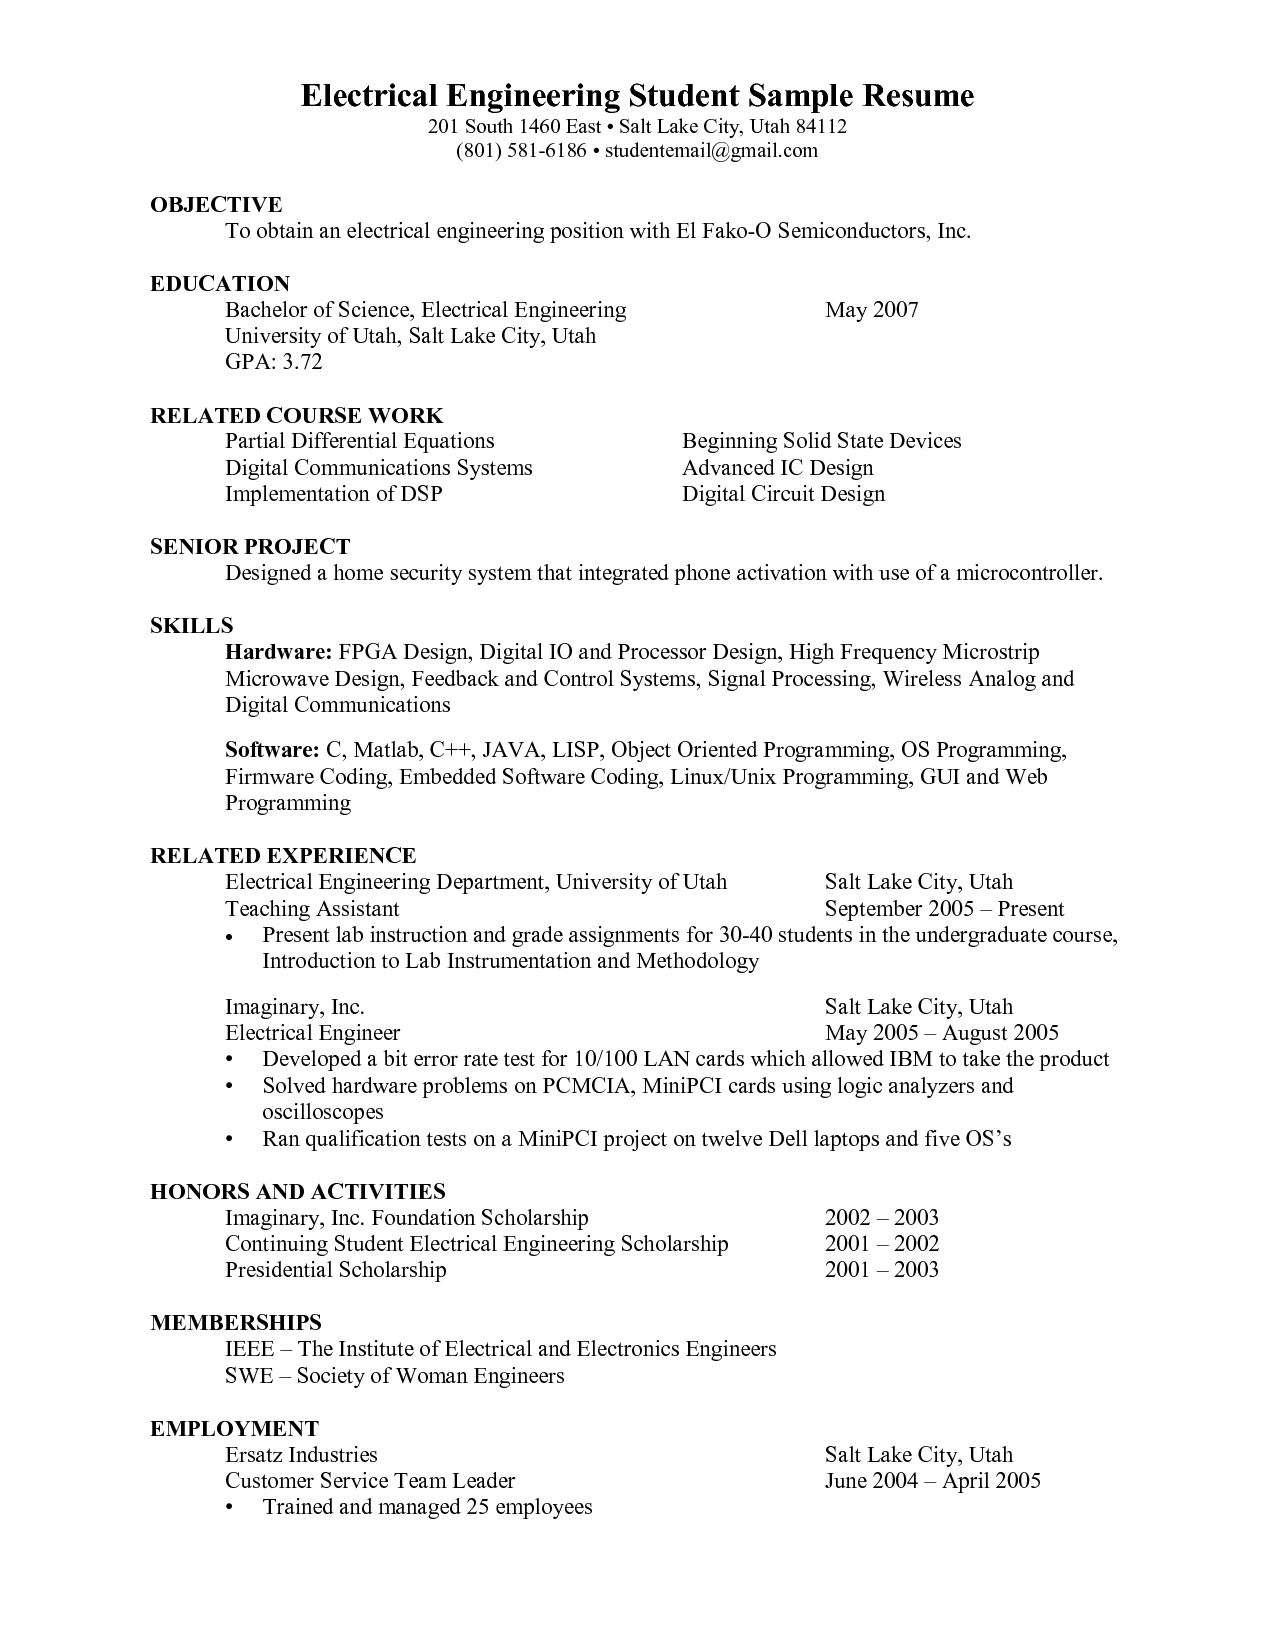 98 Electrical Engineer Resume Template Entry Level Electrical